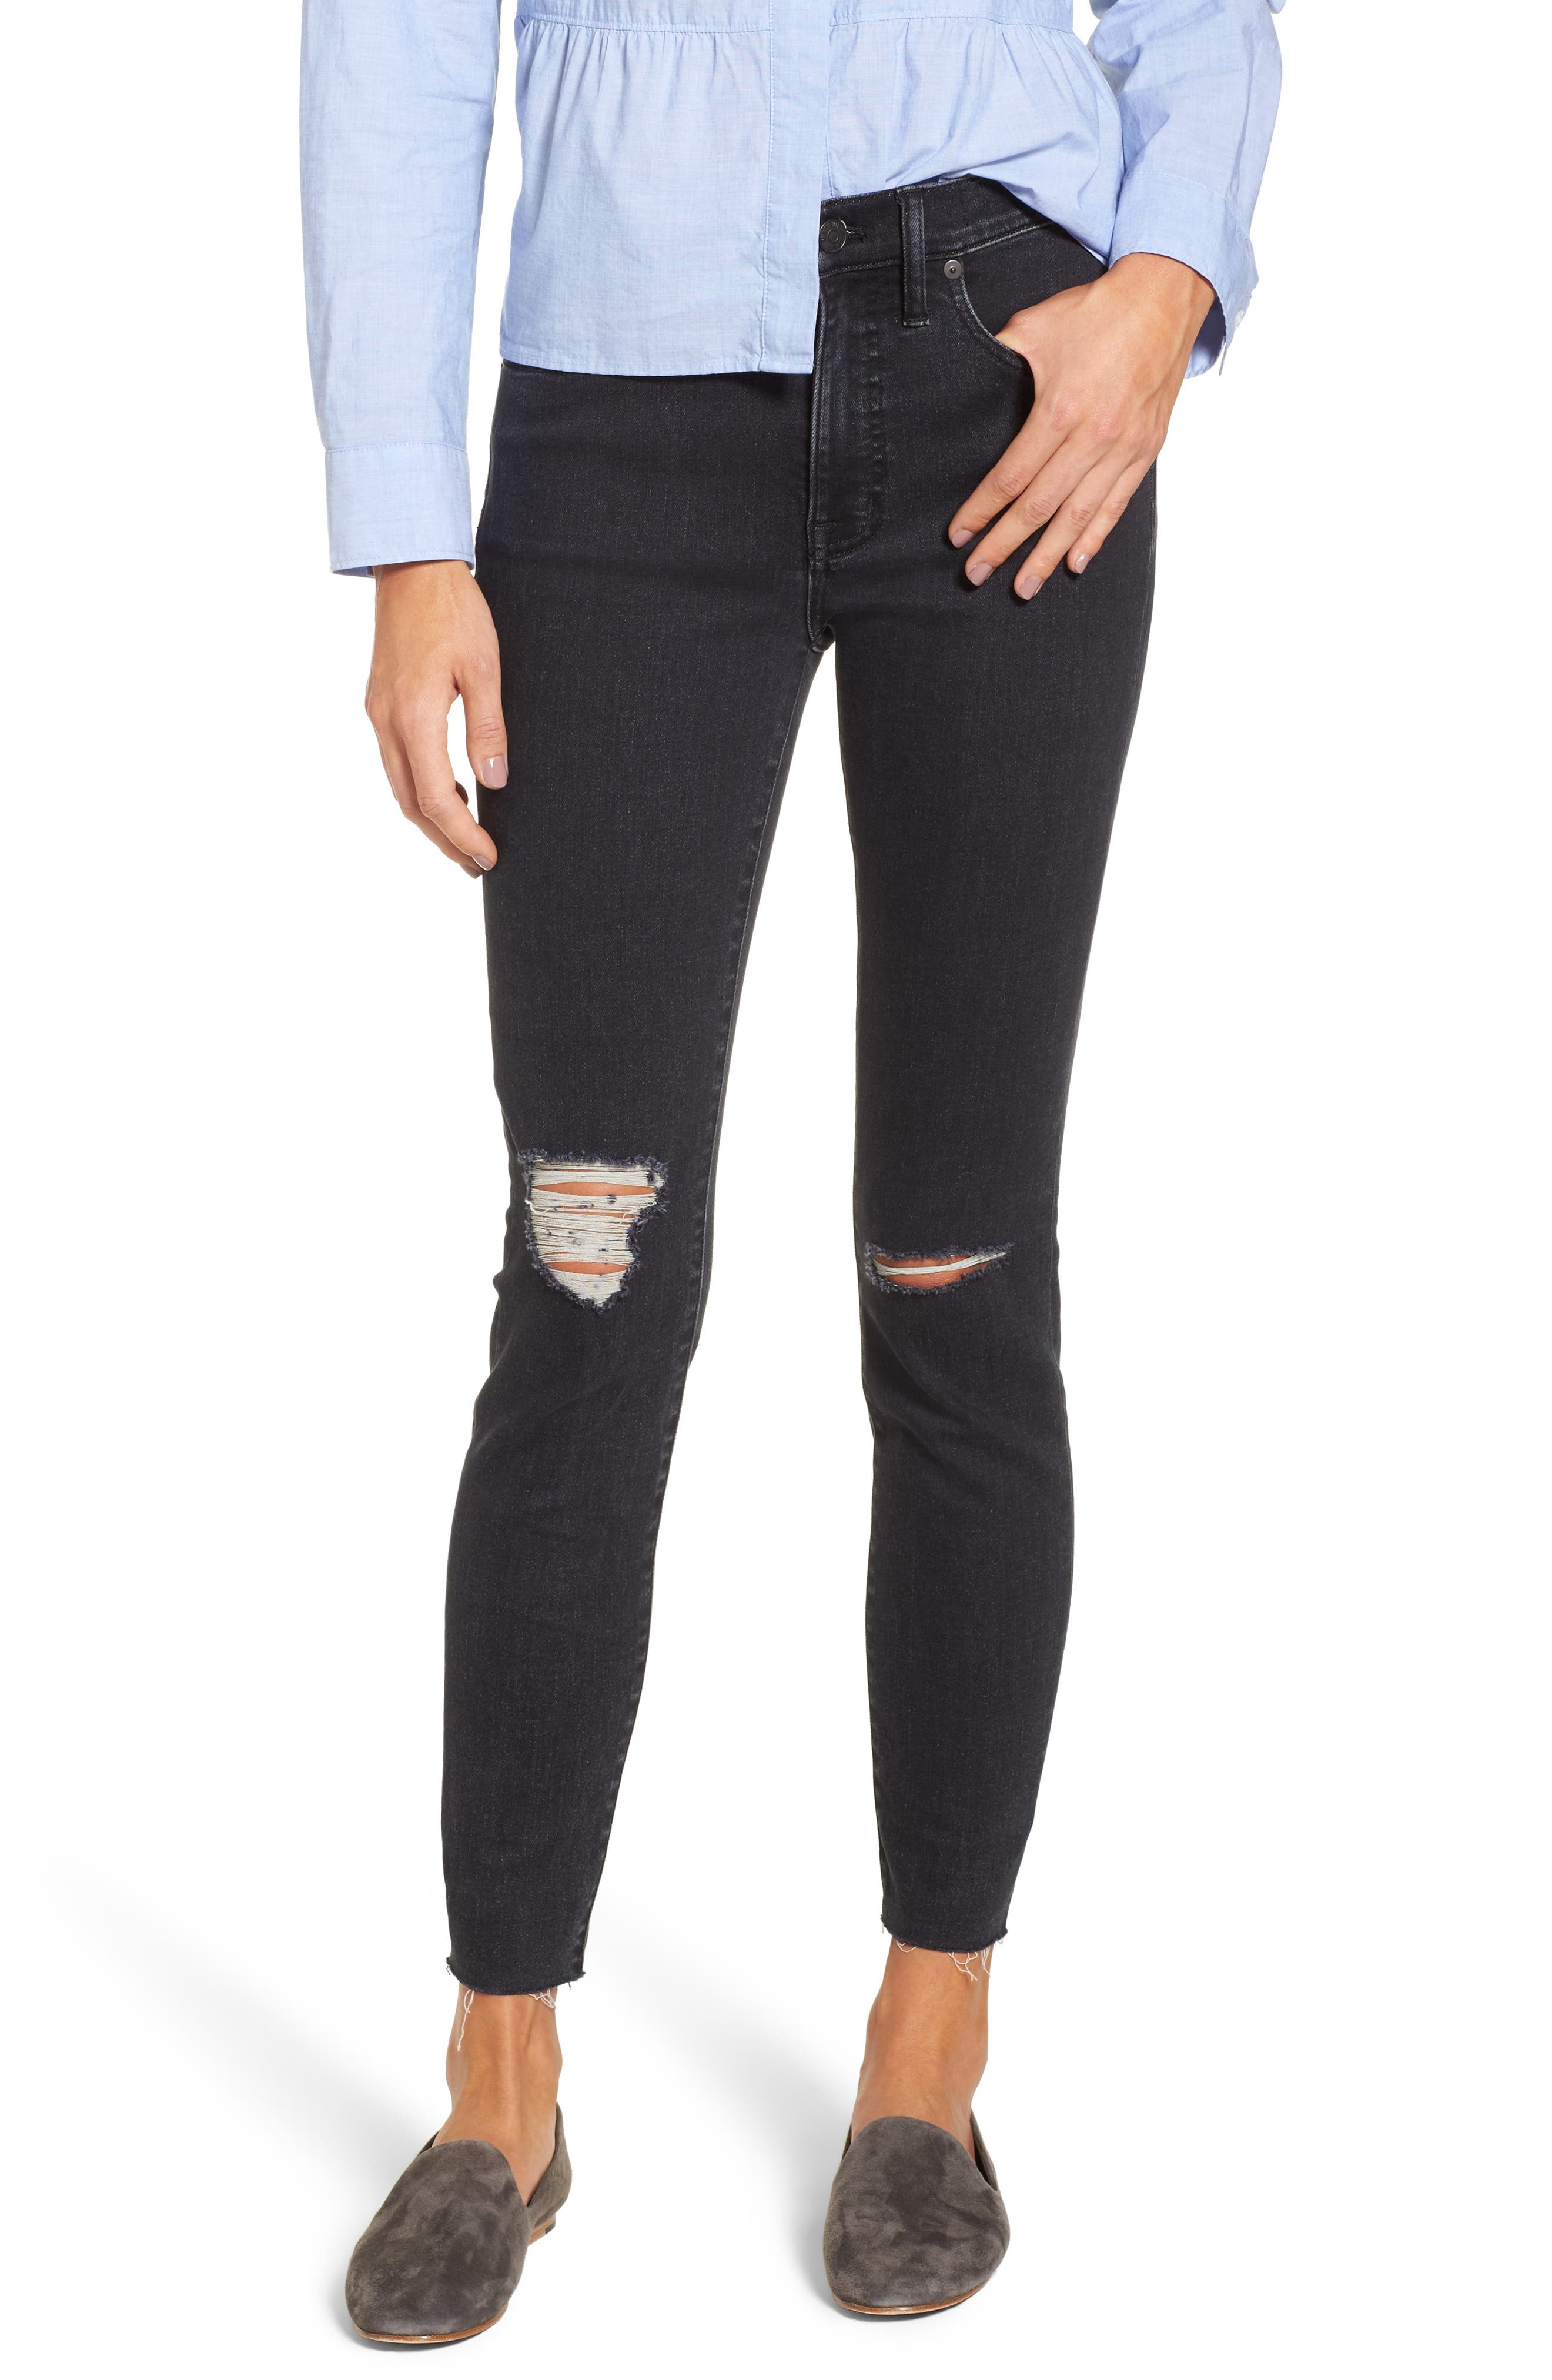 Madewell 10-Inch High Rise Ripped Skinny Jeans (Ruth)